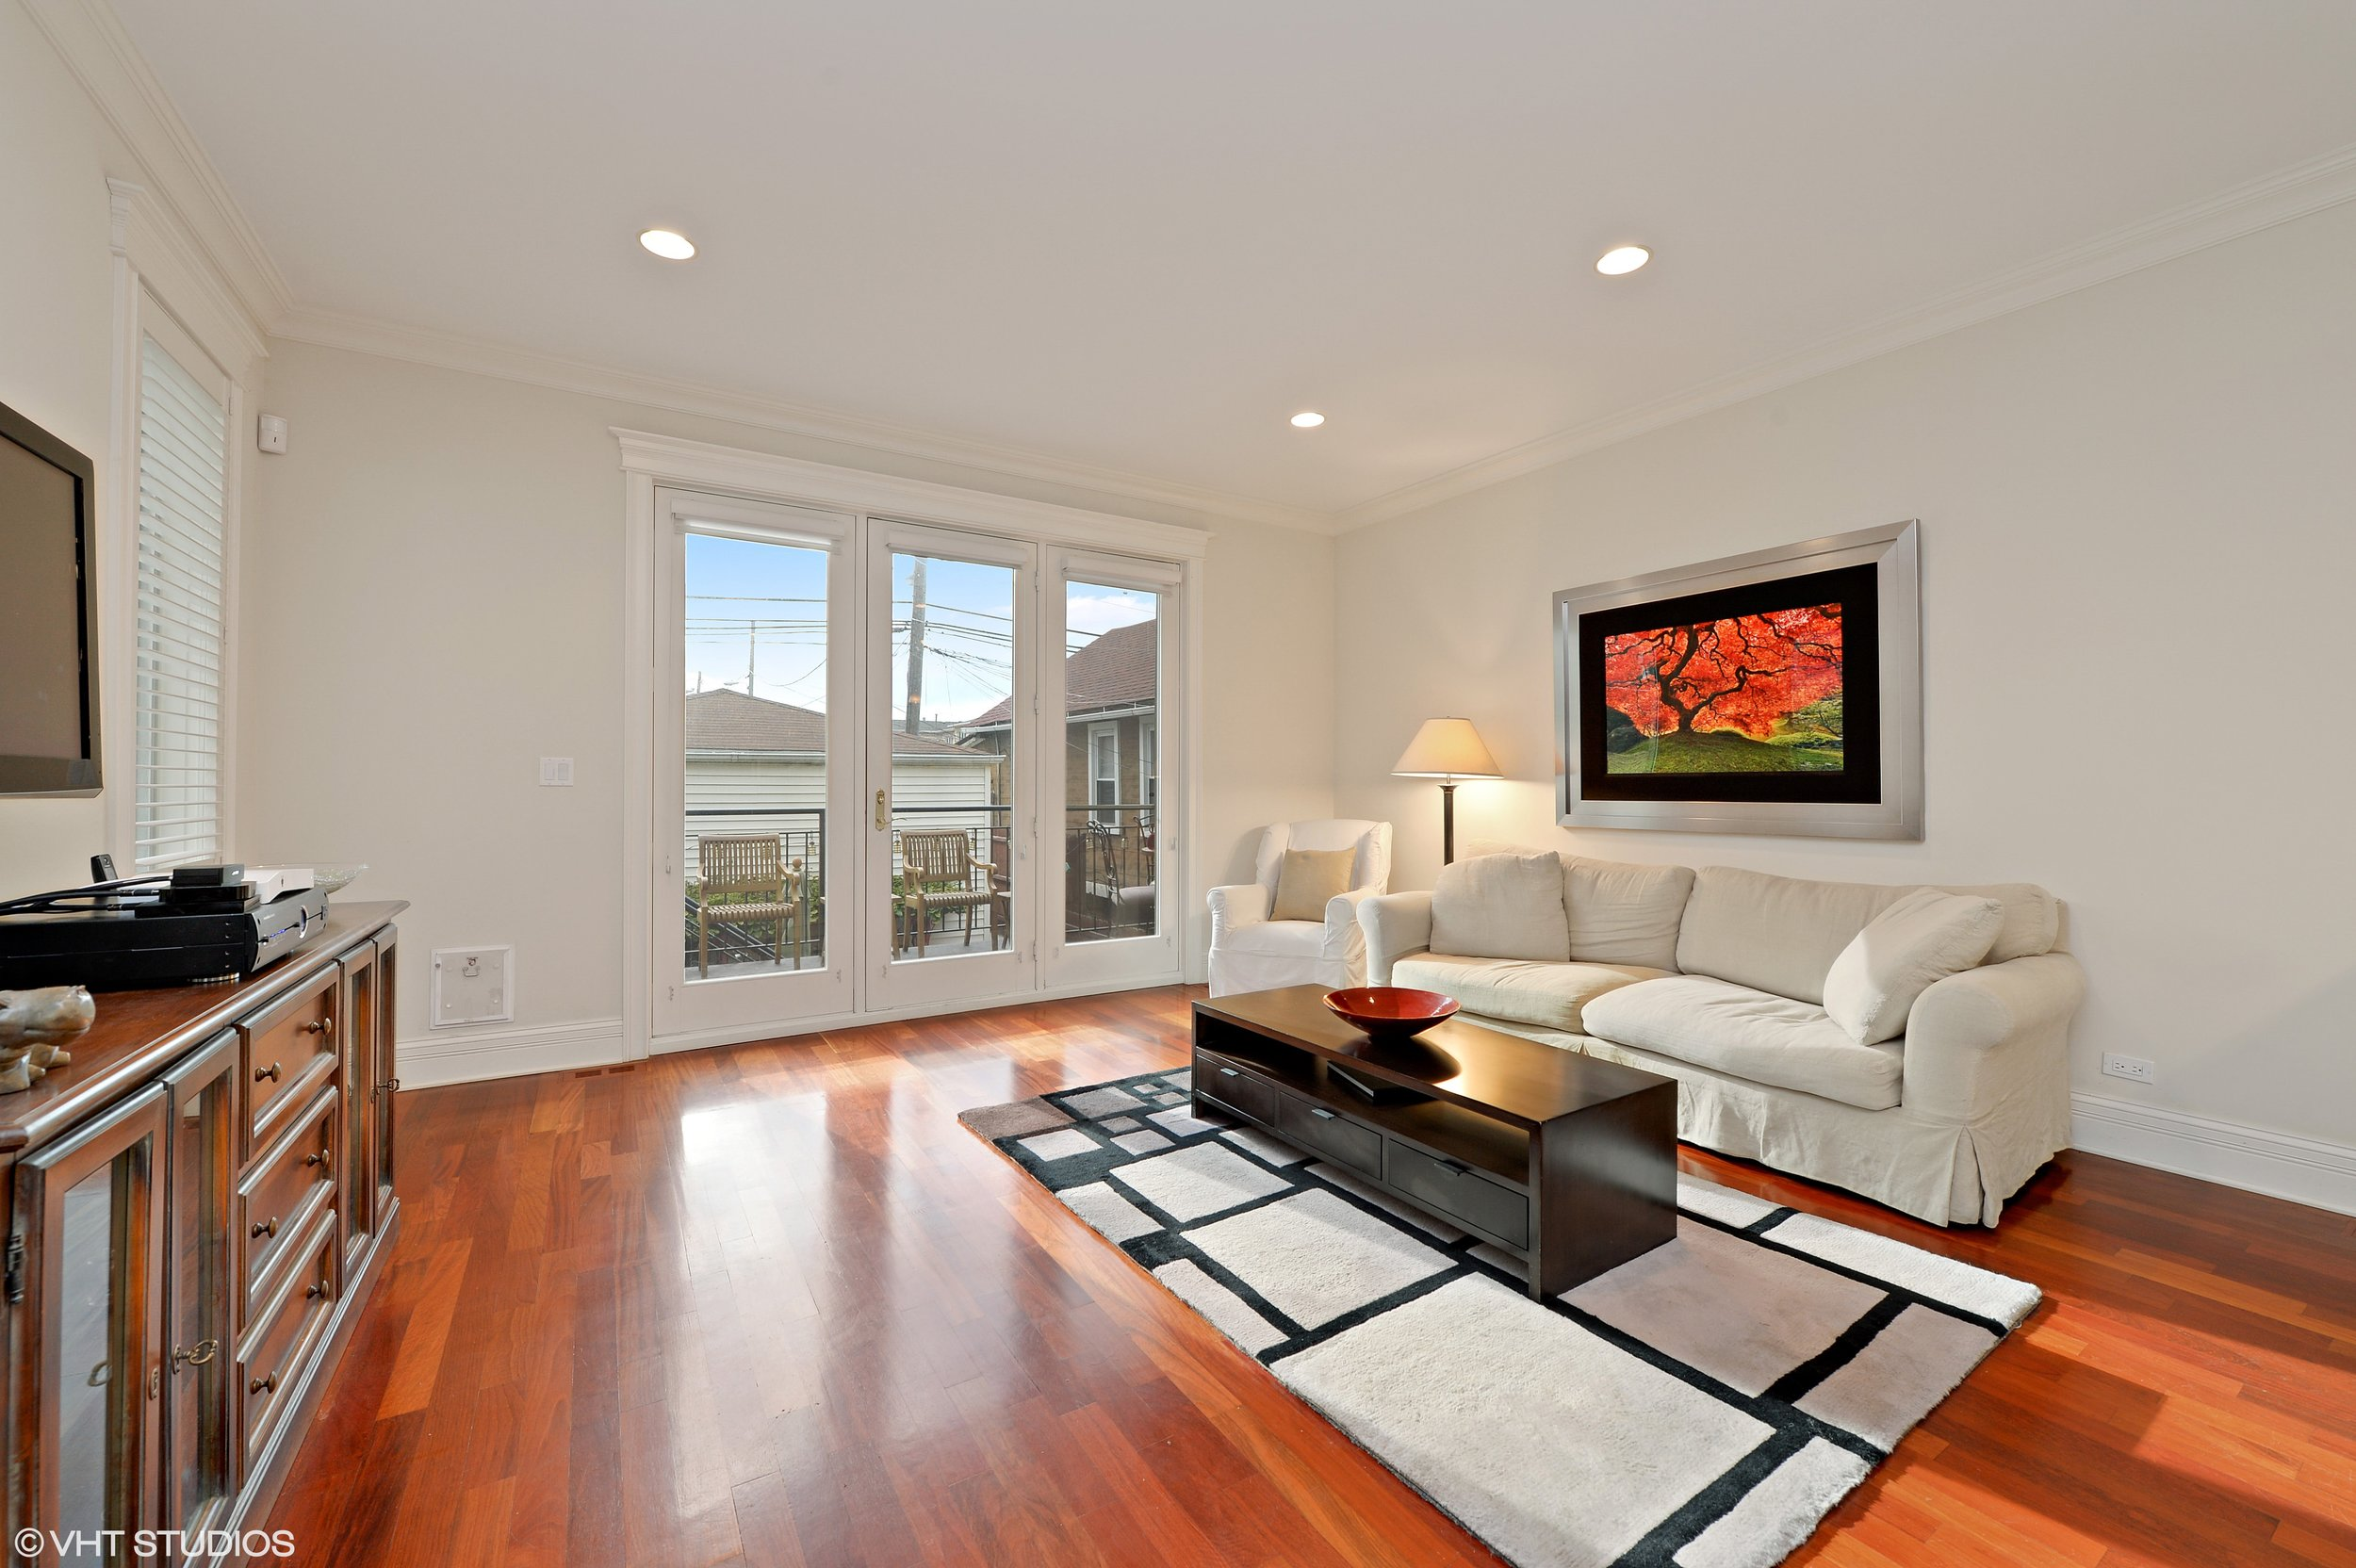 07_3212SouthThroopSt_3_FamilyRoom_HiRes.jpg